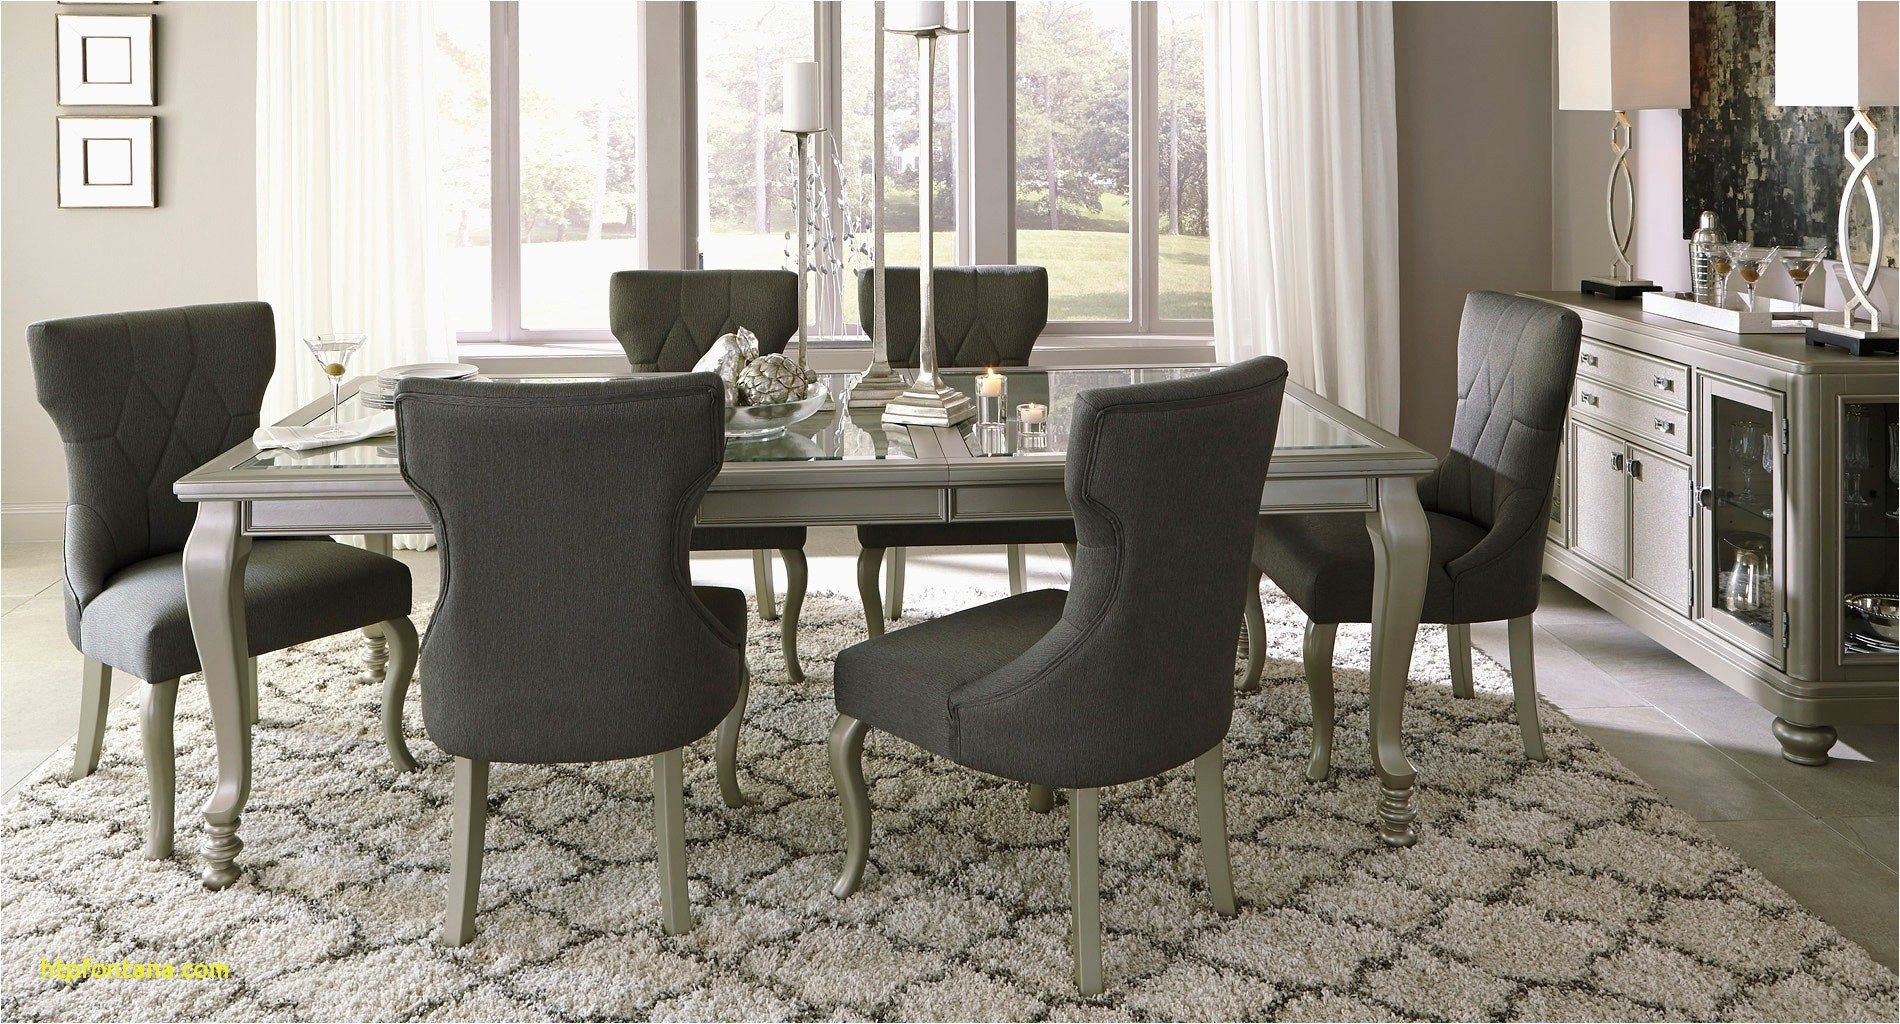 carpet runners for hardwood floors of inspirational recommended carpet for living room 2018 torrerio co for living room decor ideas unique shaker chairs 0d archives modern house ideas and furniture set